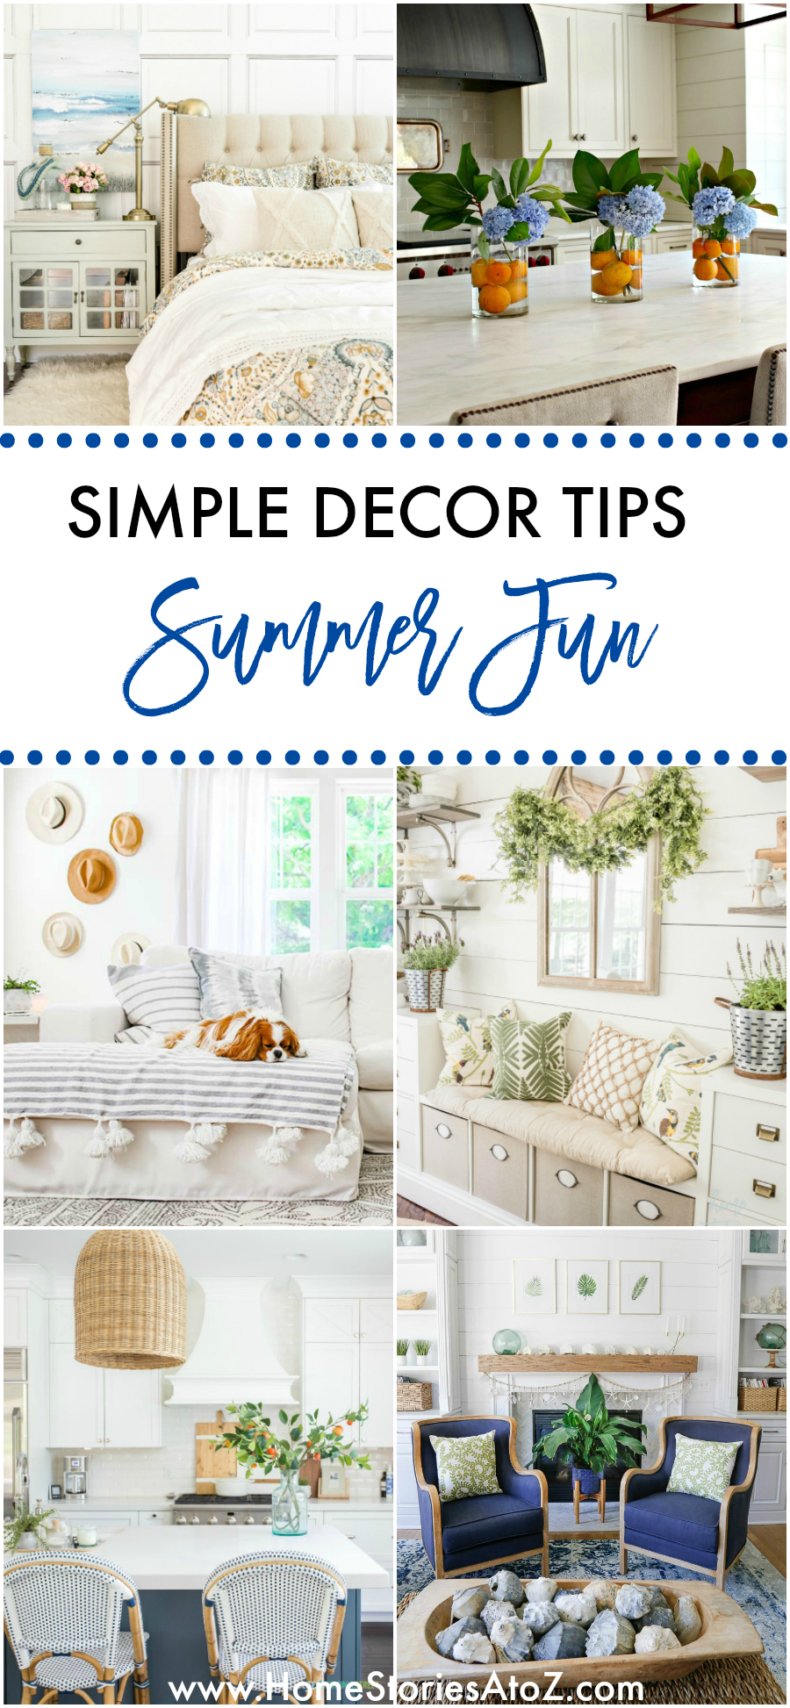 Simple Decor Tips for Summer Fun